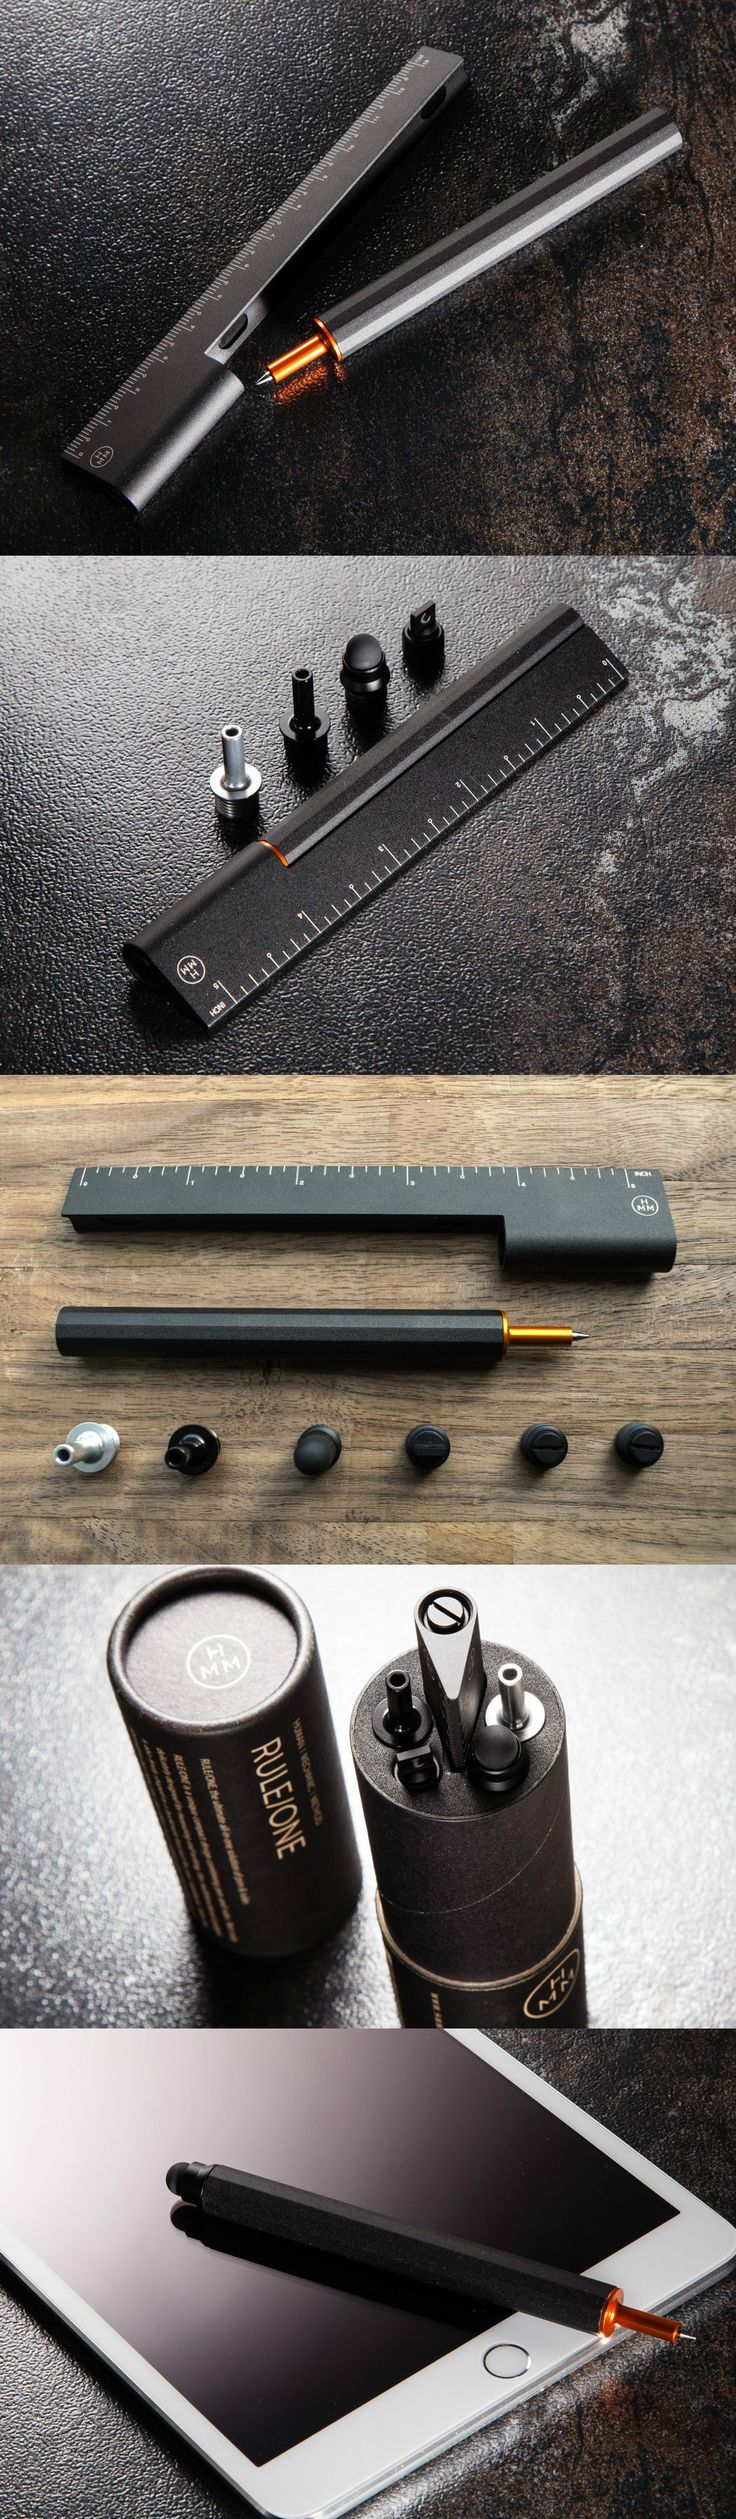 The RULE/ONE by HMM Project combines the ruler and the pen in a package that makes them look like they're meant for each other. Read more at Yanko Design